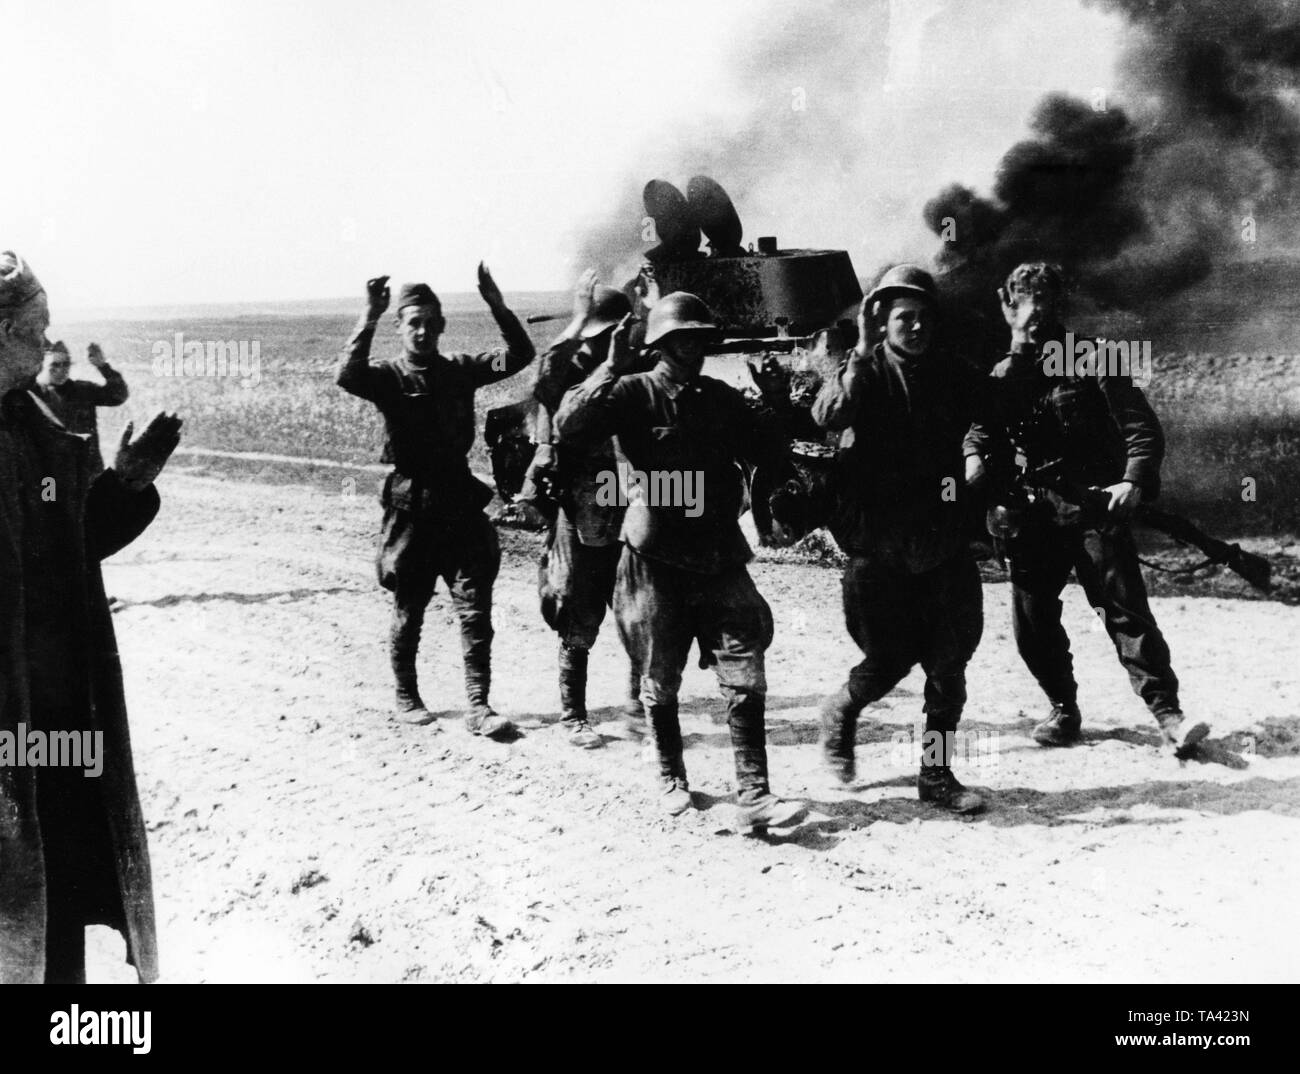 A German infantryman (far right) is leading Russian prisoners off. In the background, a burning BT-5 or BT-7. Stock Photo